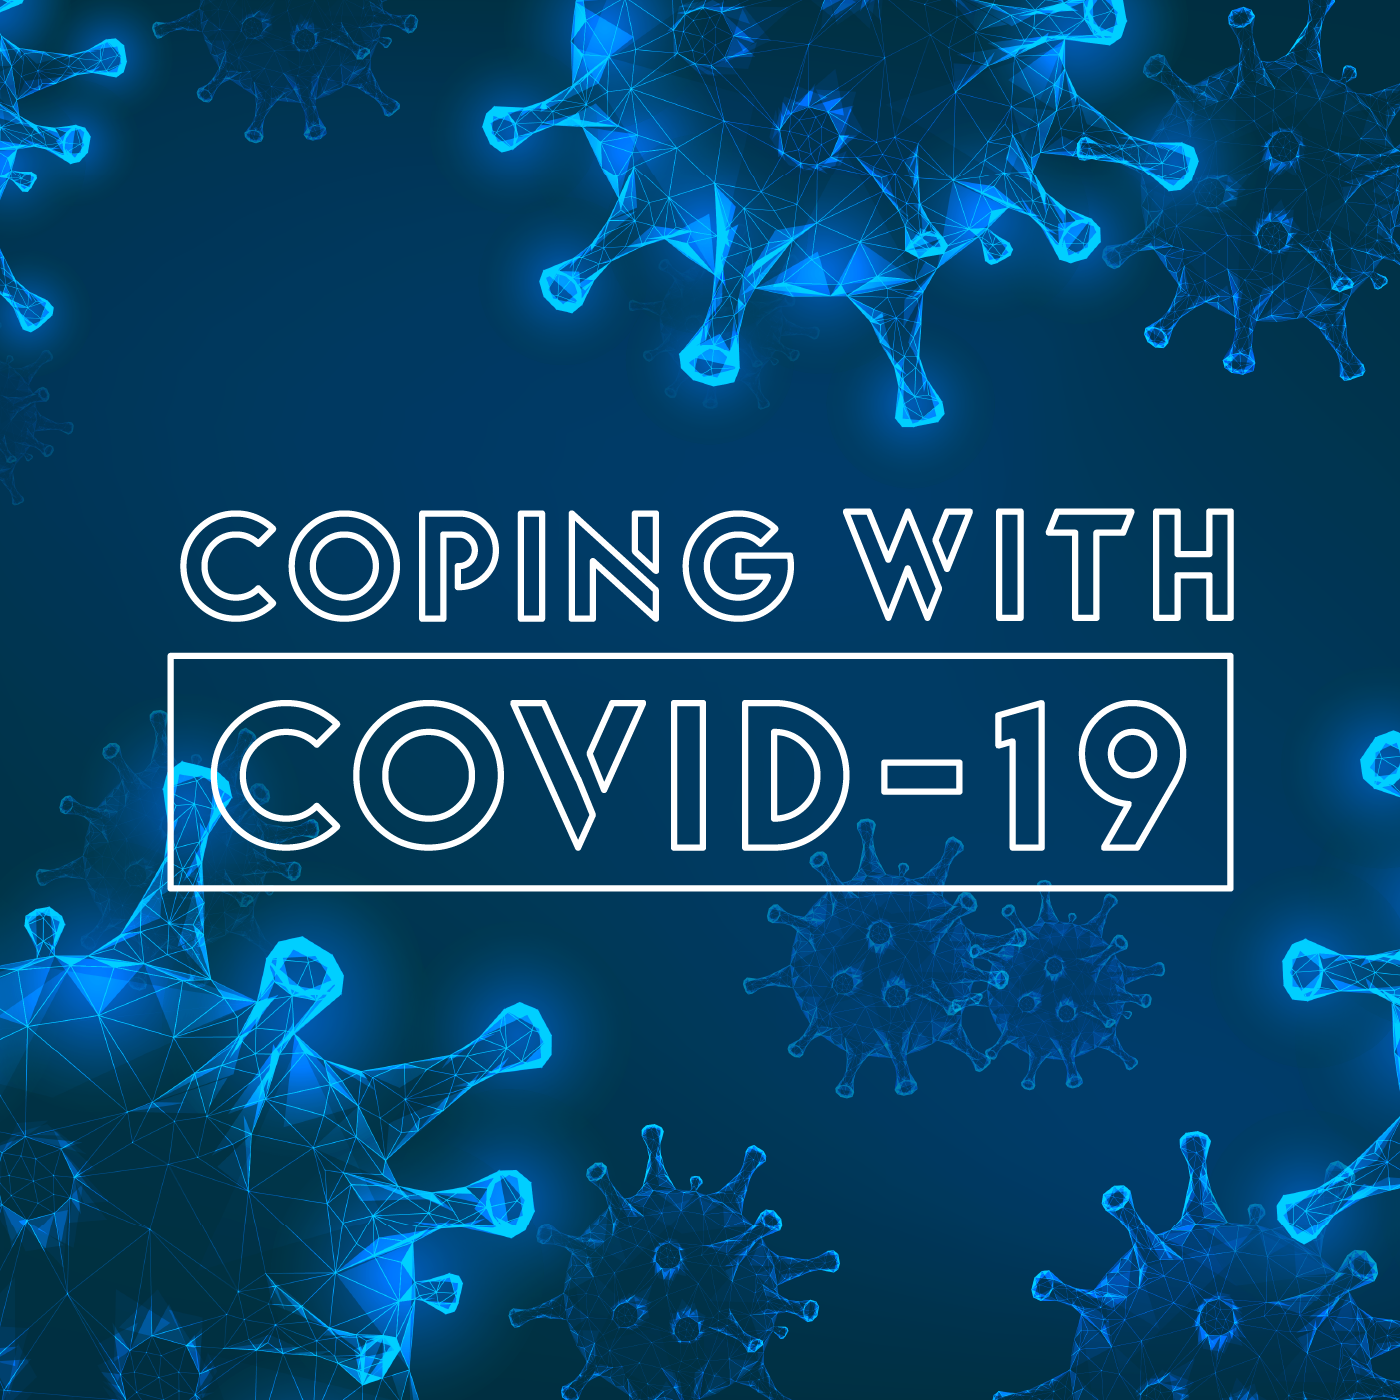 Coping with COVID19 Podcast Box